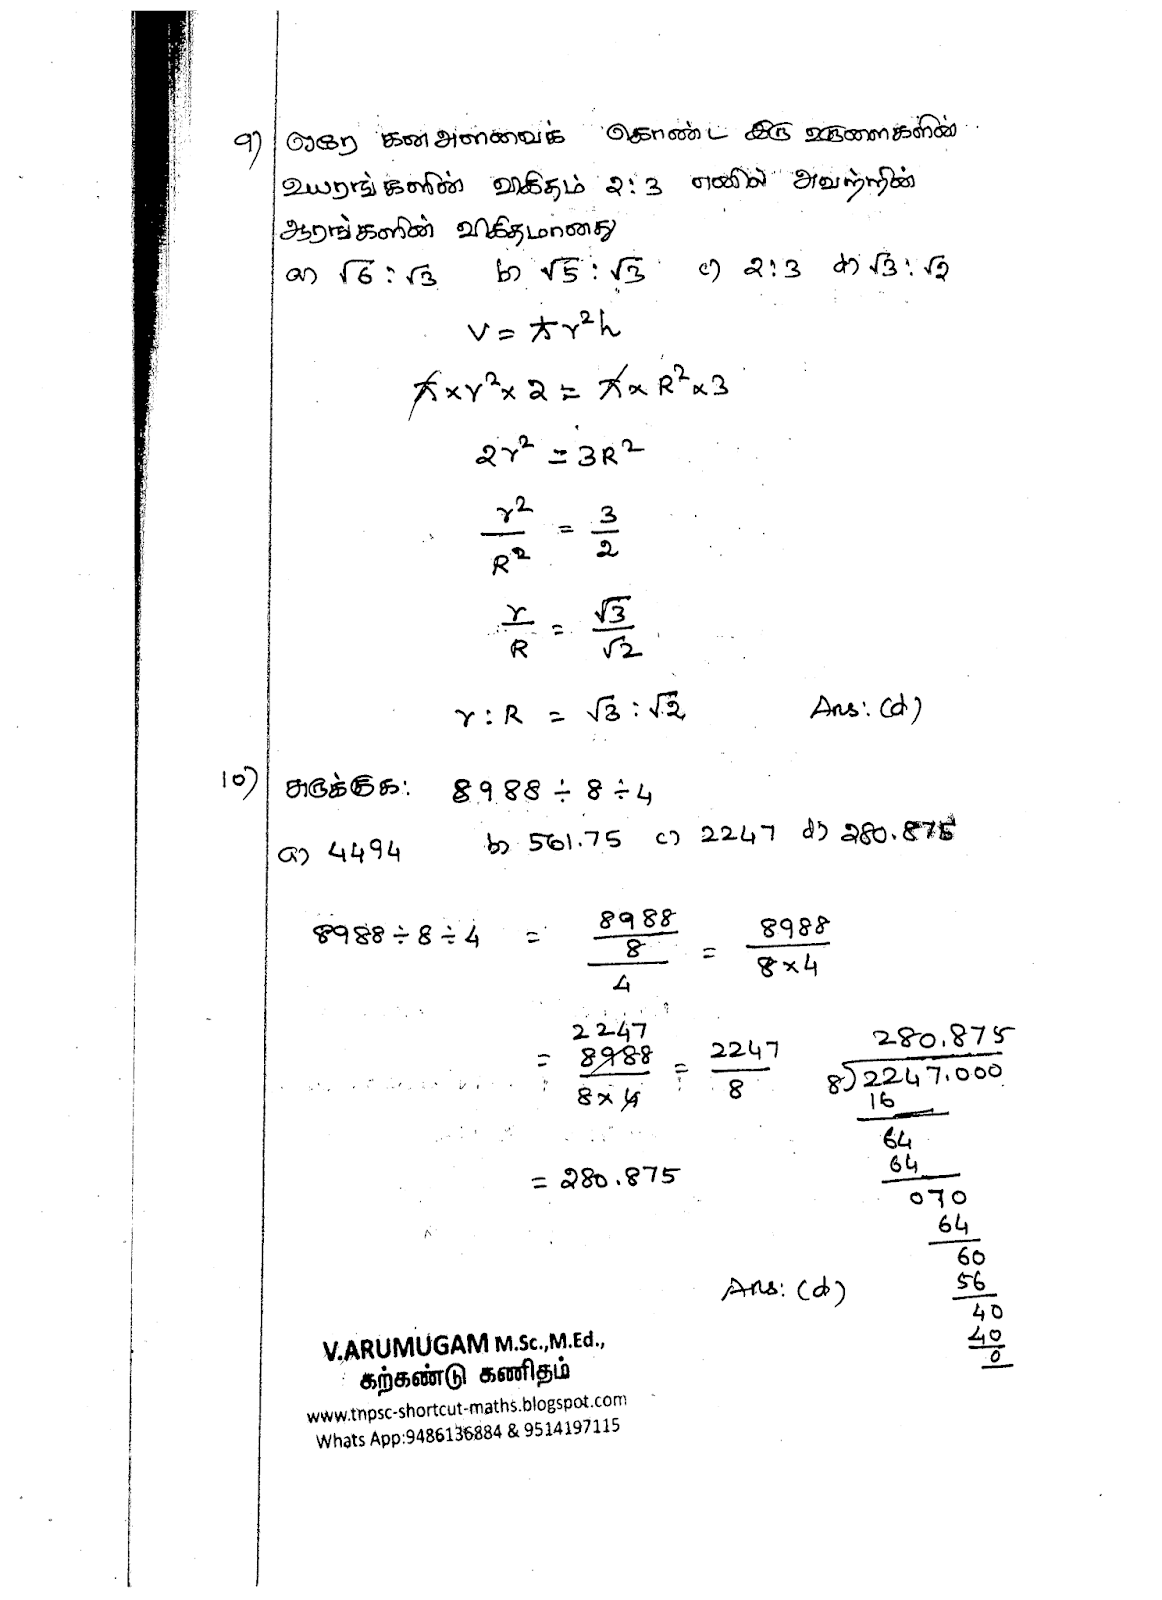 TNPSC – 2019 - Combined Engineering Services Examination - EXAM DATE: 10.08.2019. PAGE - 05/12